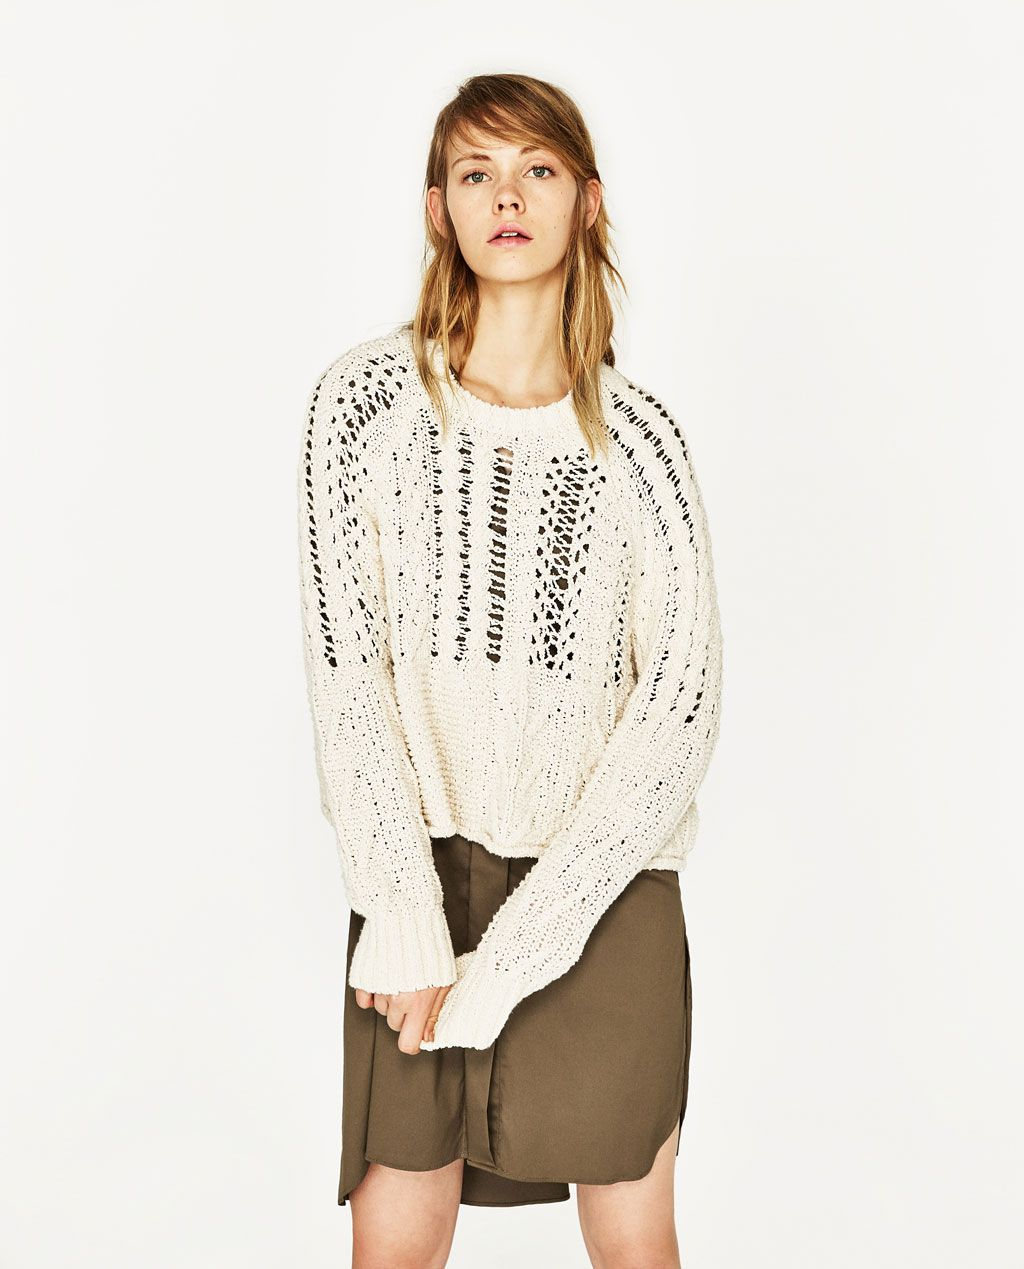 b6790edf219ba OPEN-WORK CABLE KNIT SWEATER-Sweaters-KNITWEAR-WOMAN | ZARA United States